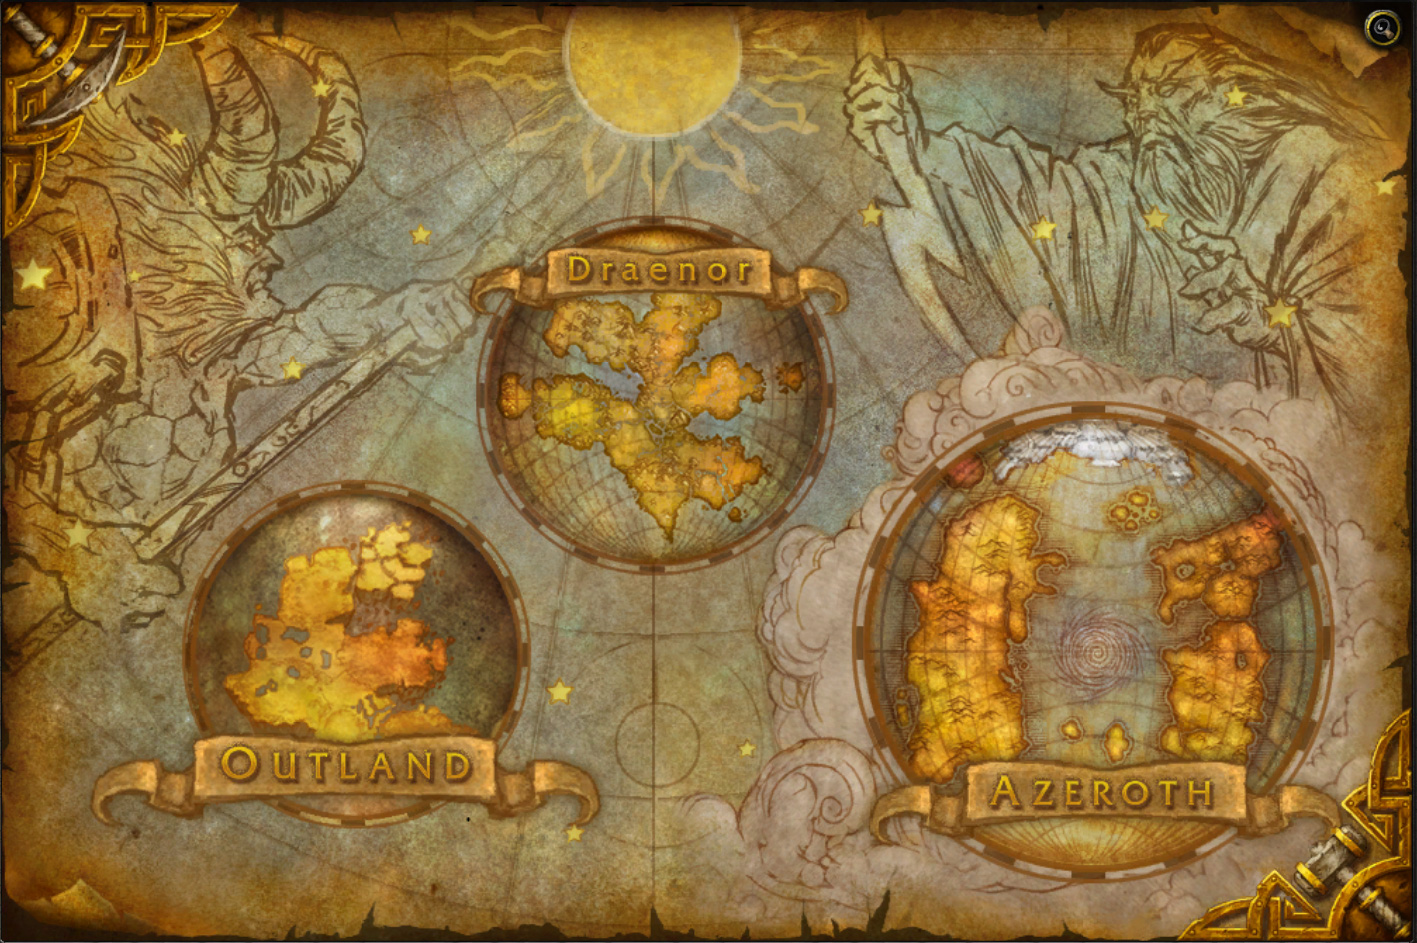 Warlords of draenor maps wowwiki fandom powered by wikia warlords of draenor maps gumiabroncs Choice Image